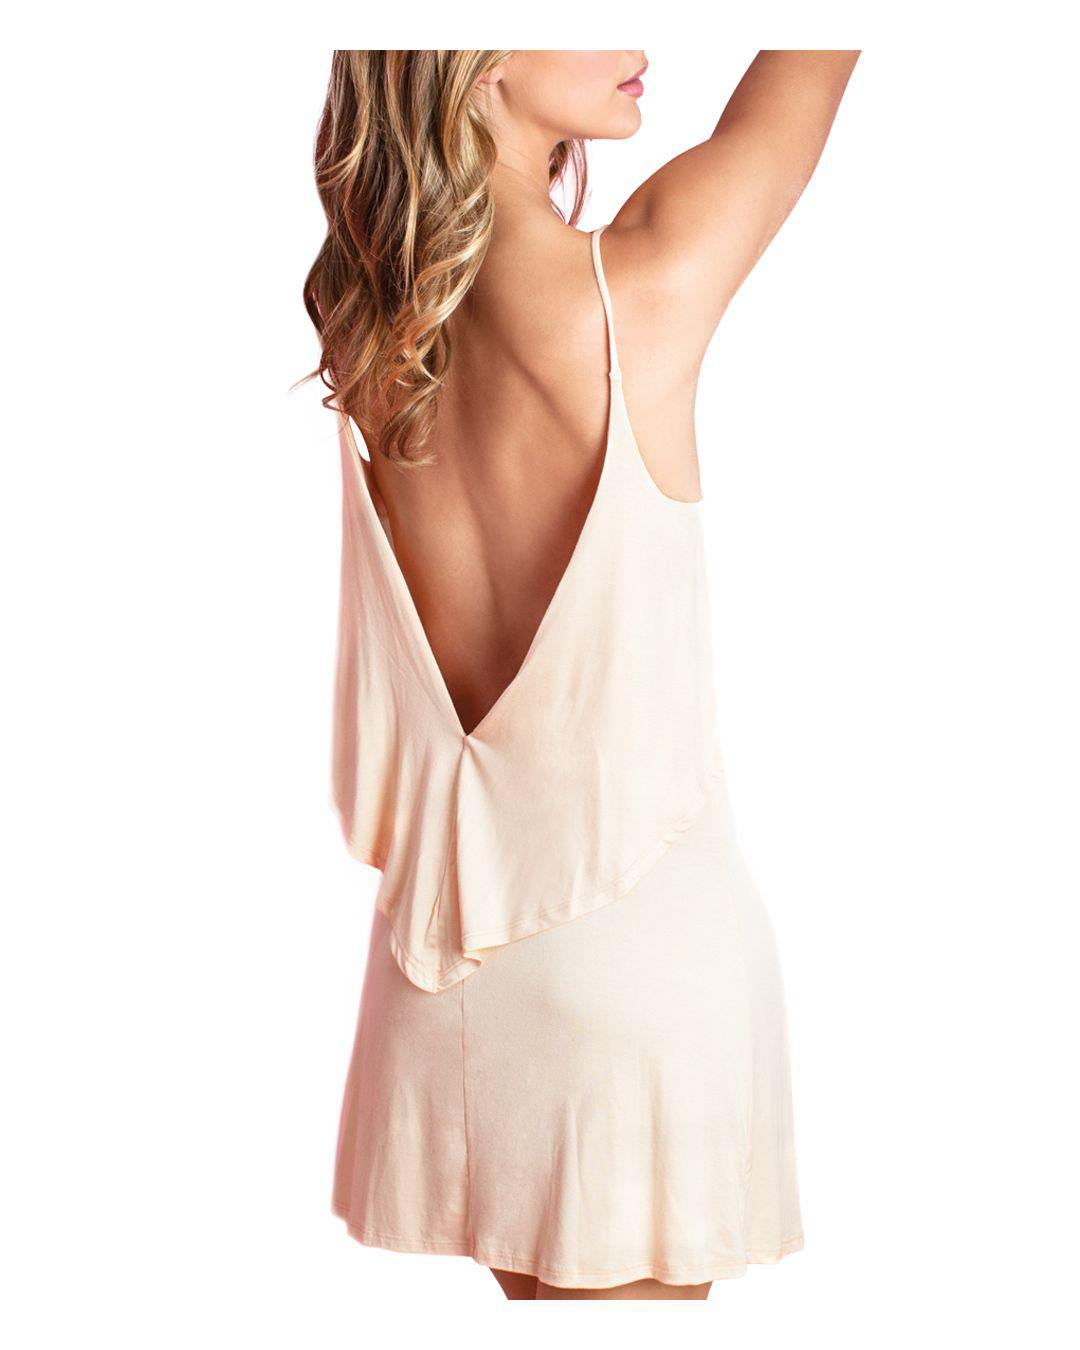 363bad57f3 Fashion Forms U Plunge Strapless Backless Bodysuit Shapewear in Natural -  Lyst